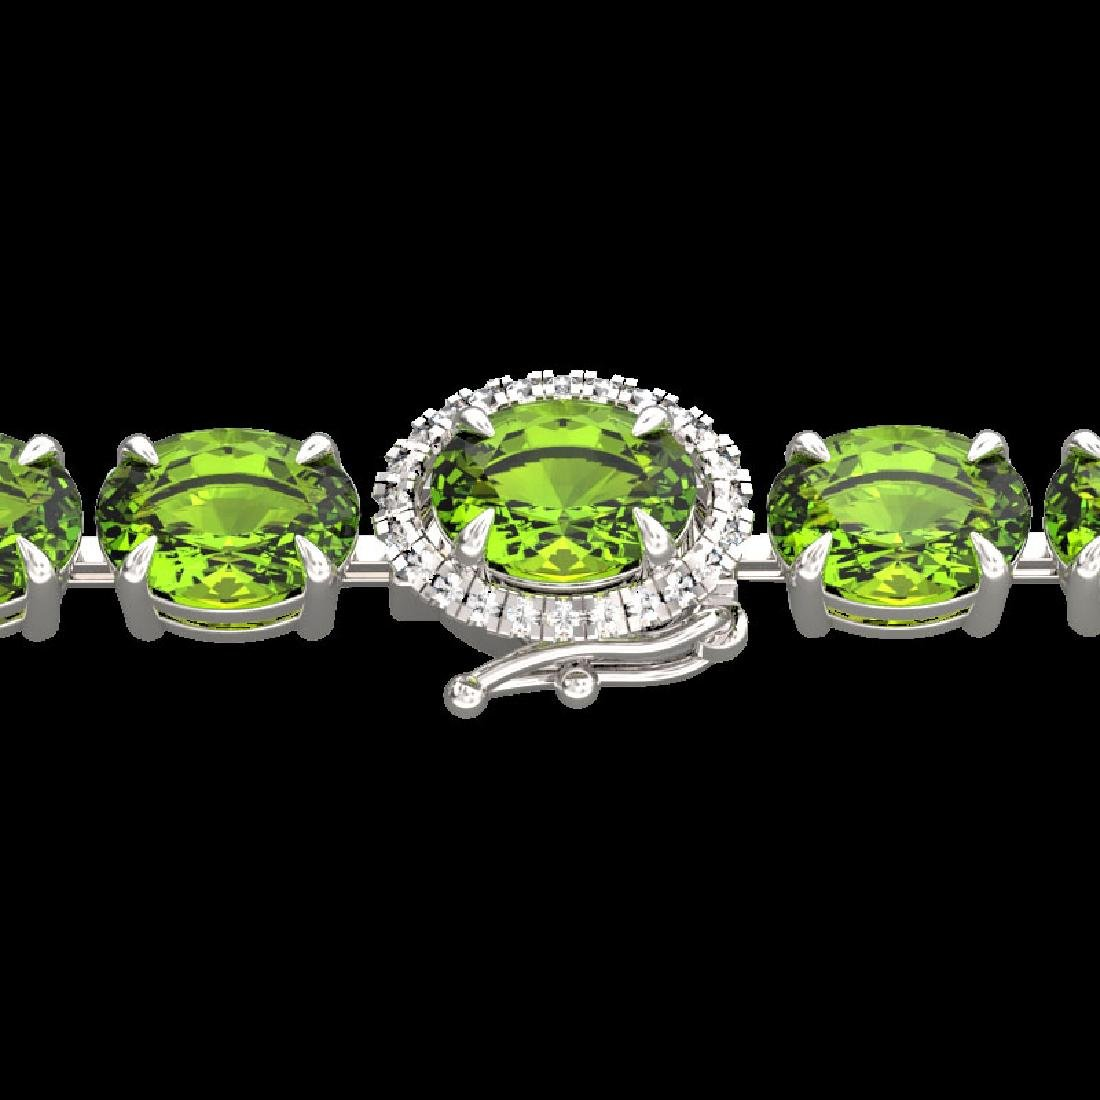 19.25 CTW Peridot & VS/SI Diamond Tennis Micro Pave